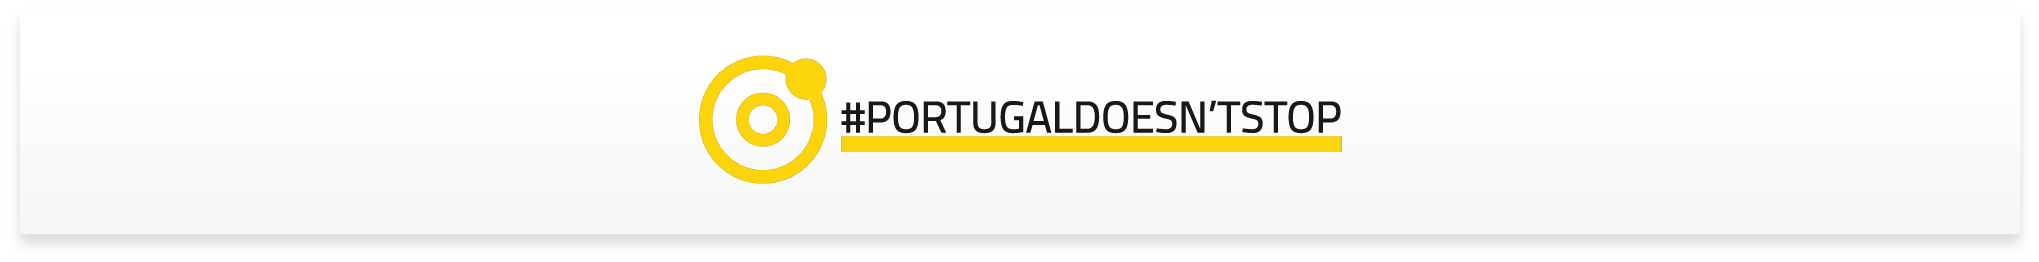 Portugal Doesn't Stop